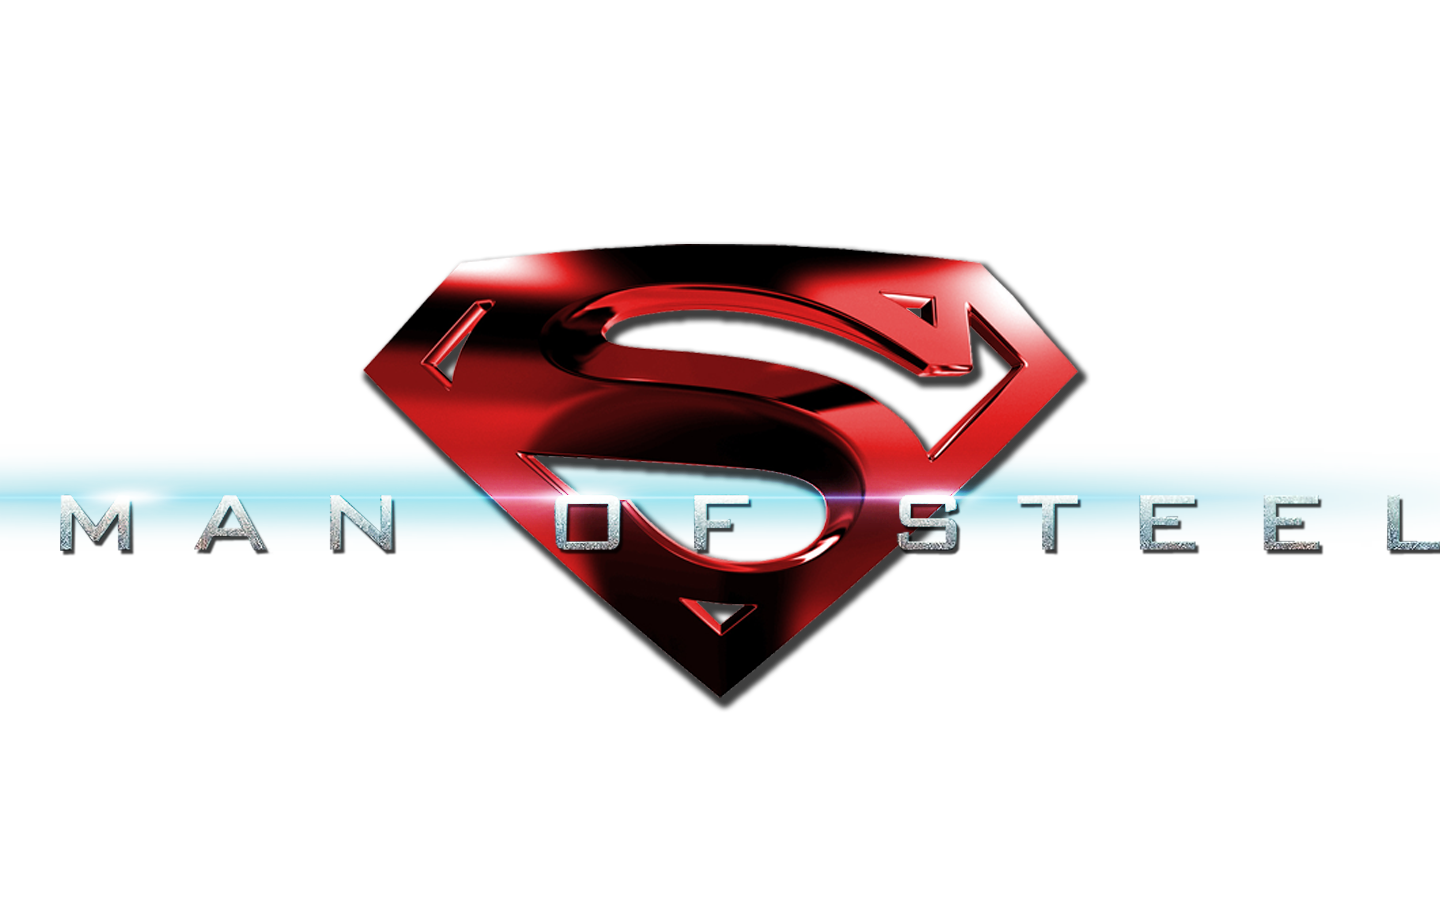 Man of steel s symbol png. Title by dinesh musiclover